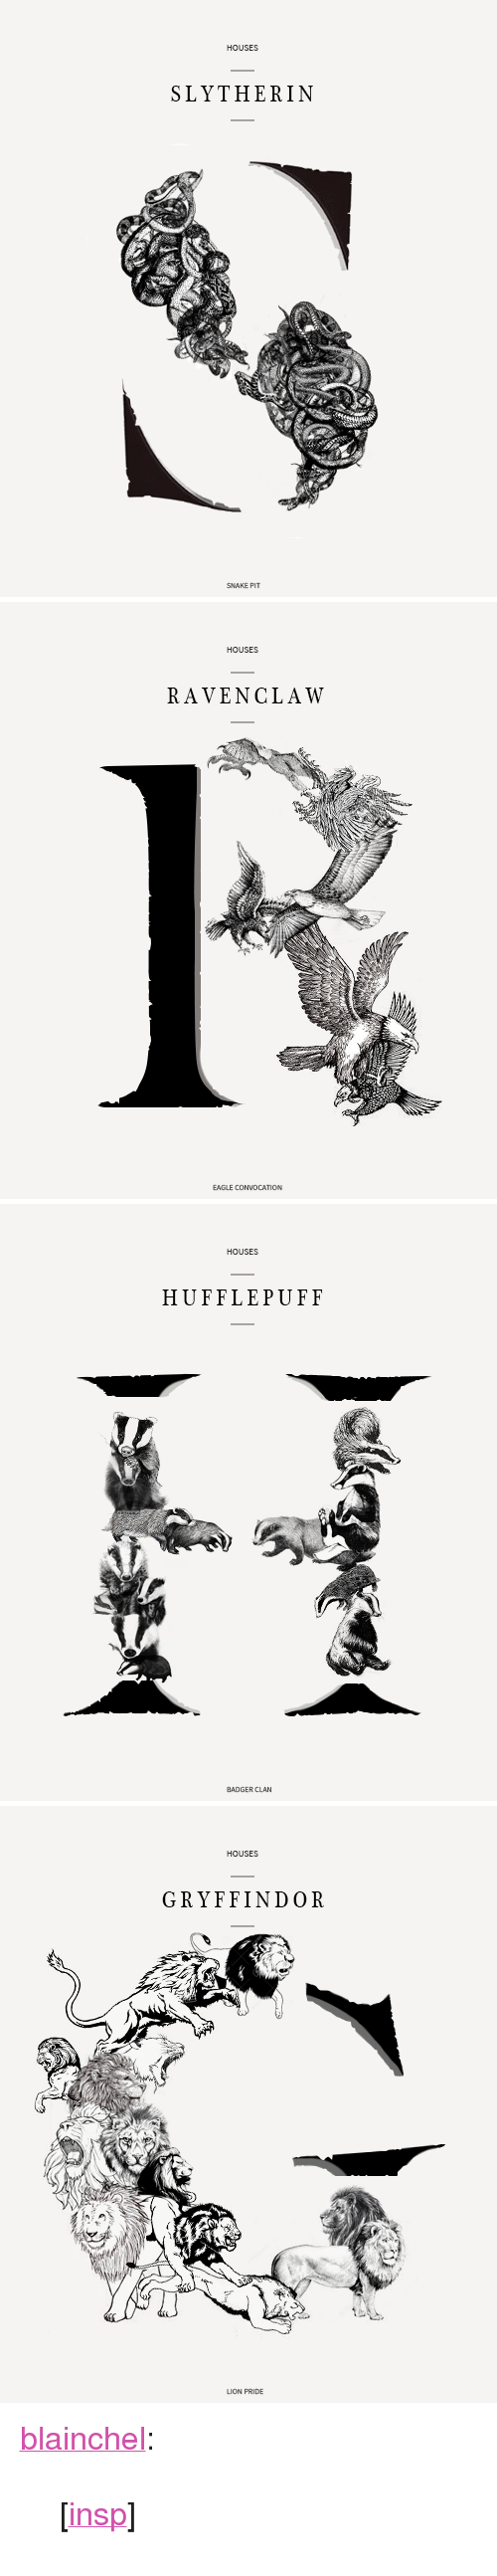 "Gryffindor, Slytherin, and Target: HOUSES  SLYTHERIN  SNAKE PIT   HOUSES  RAVENCLAW  EAGLE C   HOUSES  HUFFLEPUFF   HOUSES  GRYFFINDOR  LION PRIDE <p><a href=""http://blainchel.tumblr.com/post/151985334564/insp"" class=""tumblr_blog"" target=""_blank"">blainchel</a>:</p> <blockquote><p>[<a href=""https://www.behance.net/gallery/16227881/Horse-%28Illustration%29"" target=""_blank"">insp</a>]<br/></p></blockquote>"